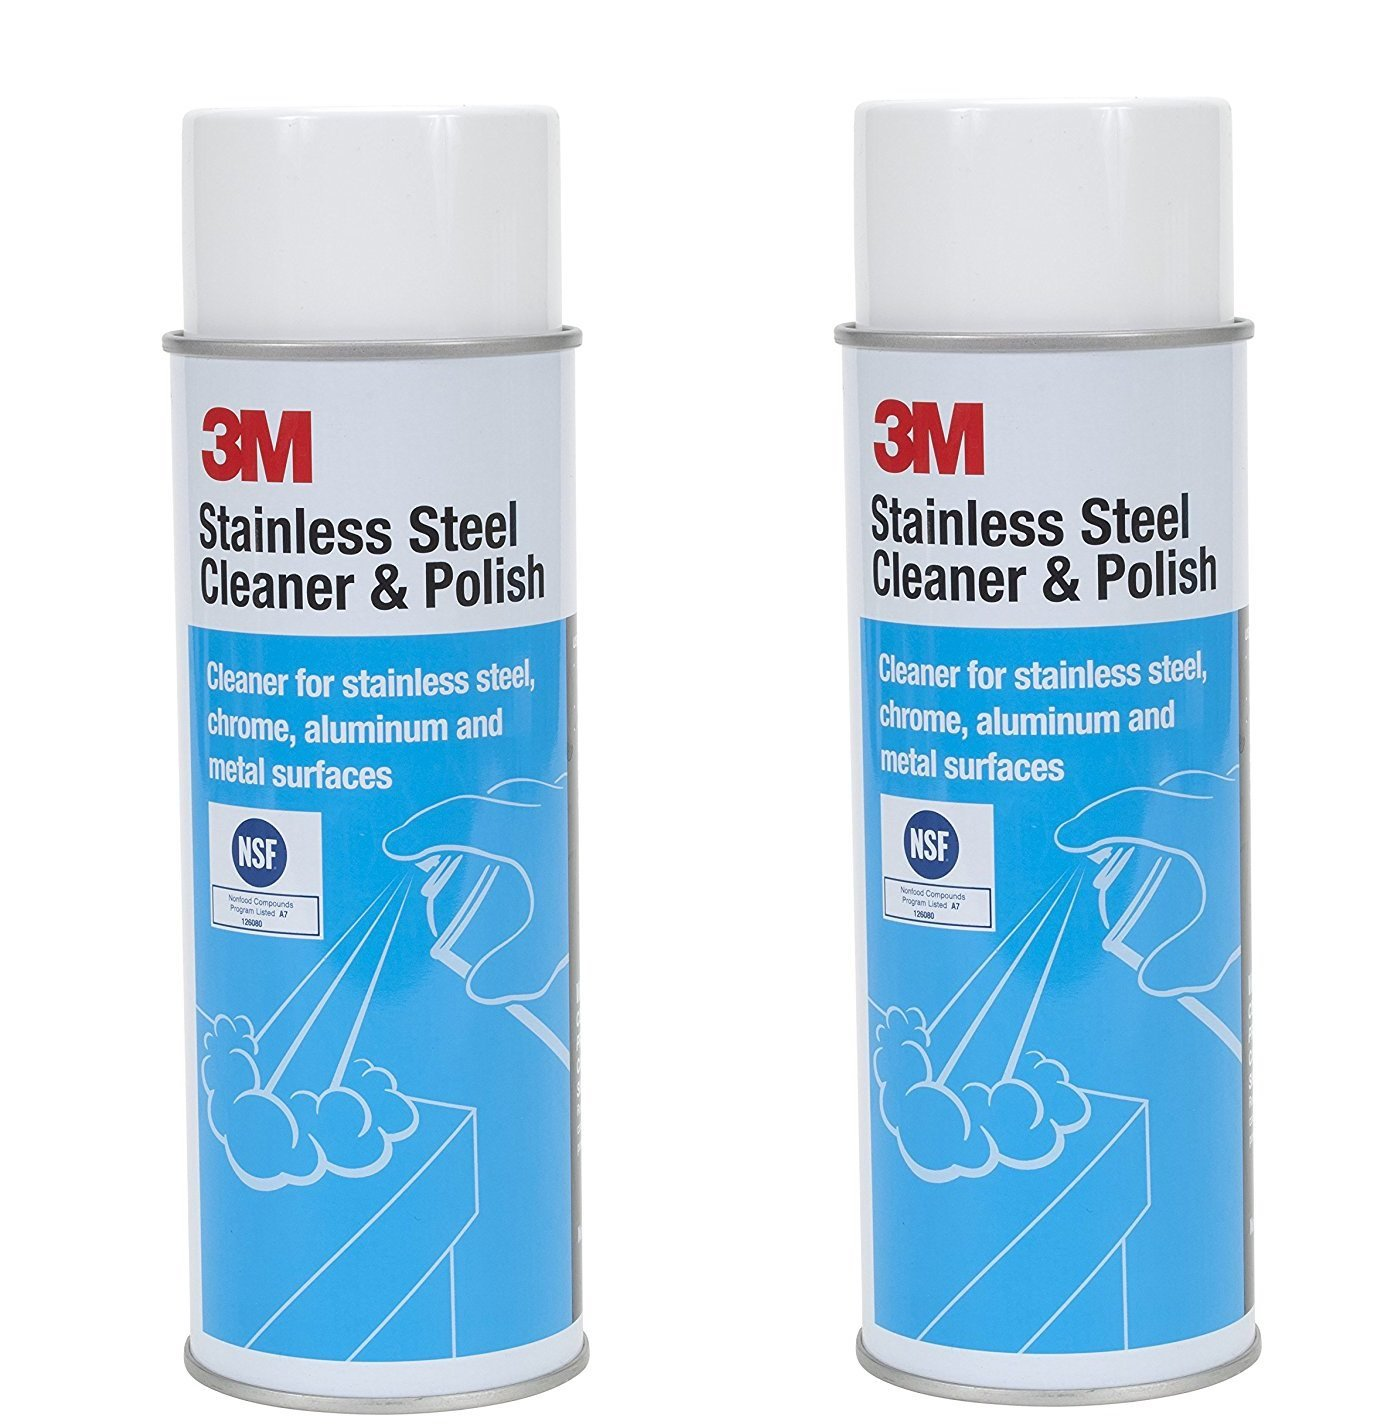 3M 14002 Stainless Steel Cleaner and Polish, 2 Sets (21 oz)